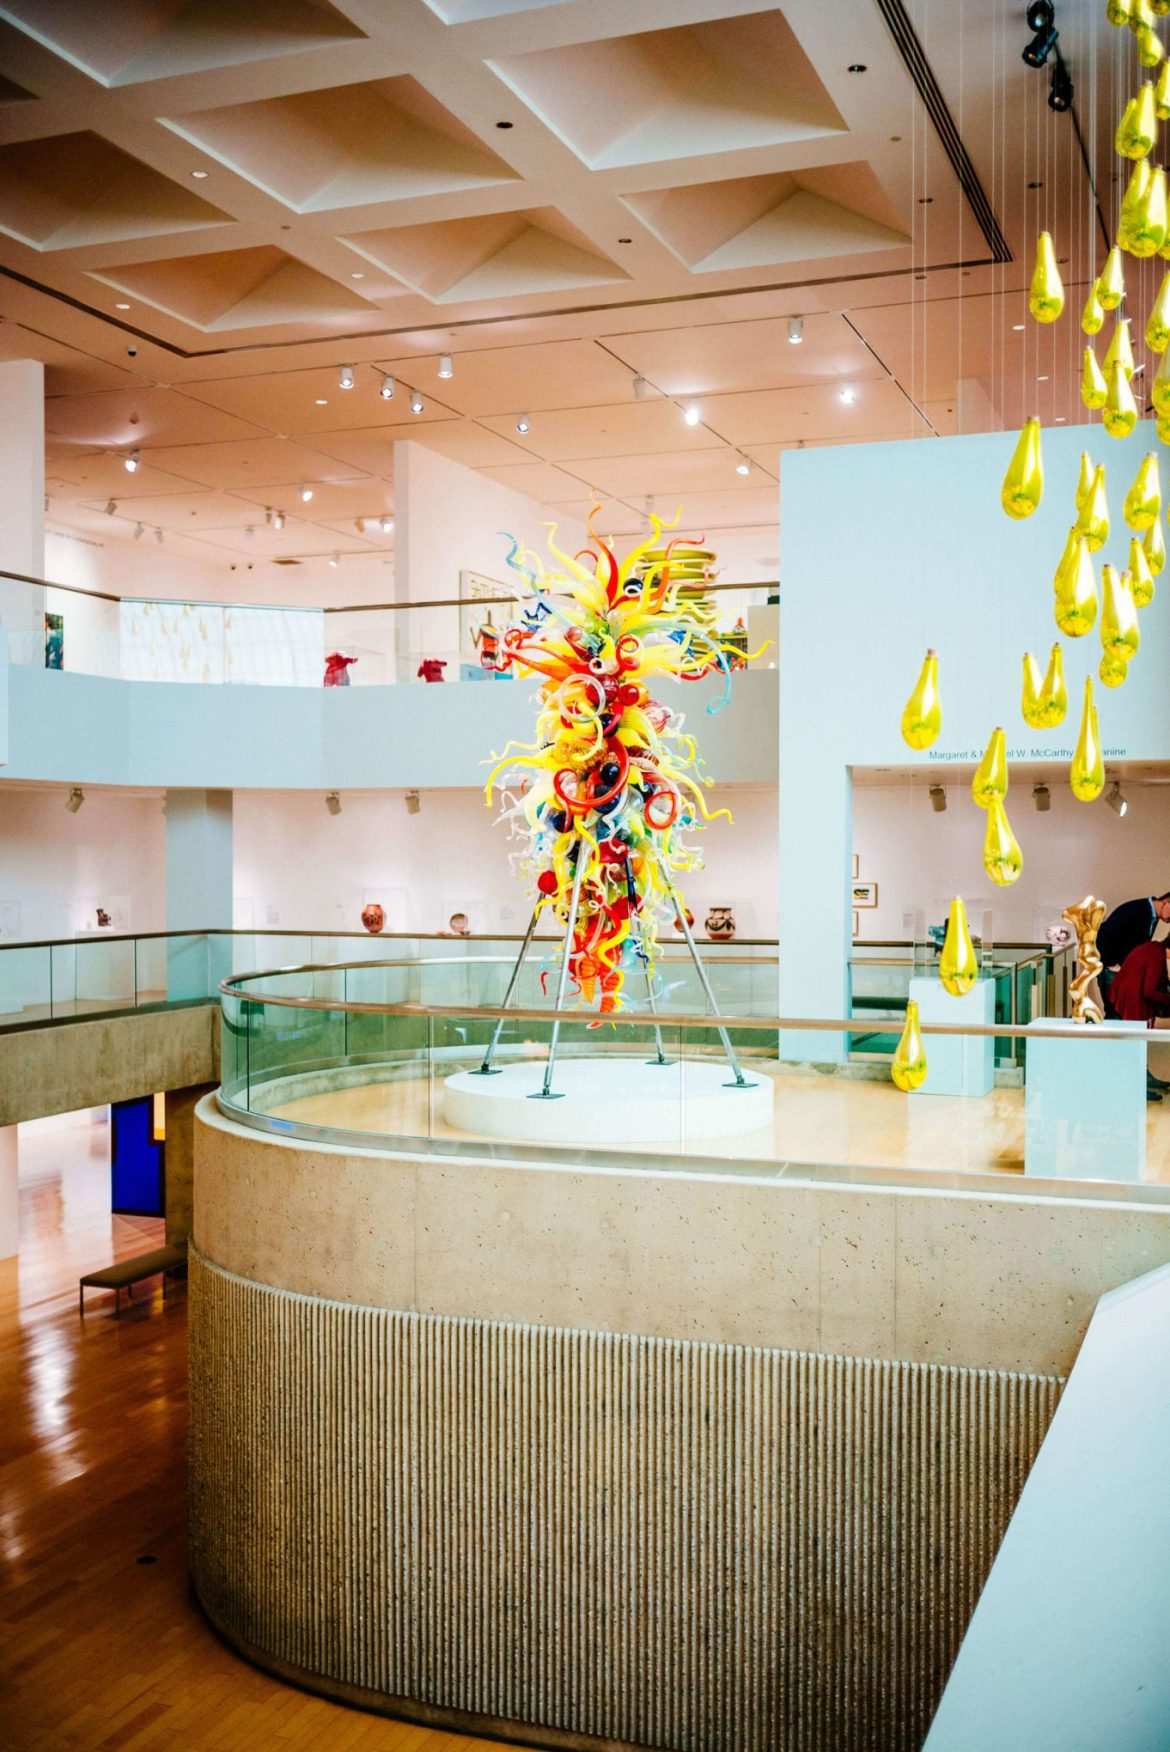 If you love to wander around the modern art you must visit the Palm Springs Art Museum, The Taste Edit